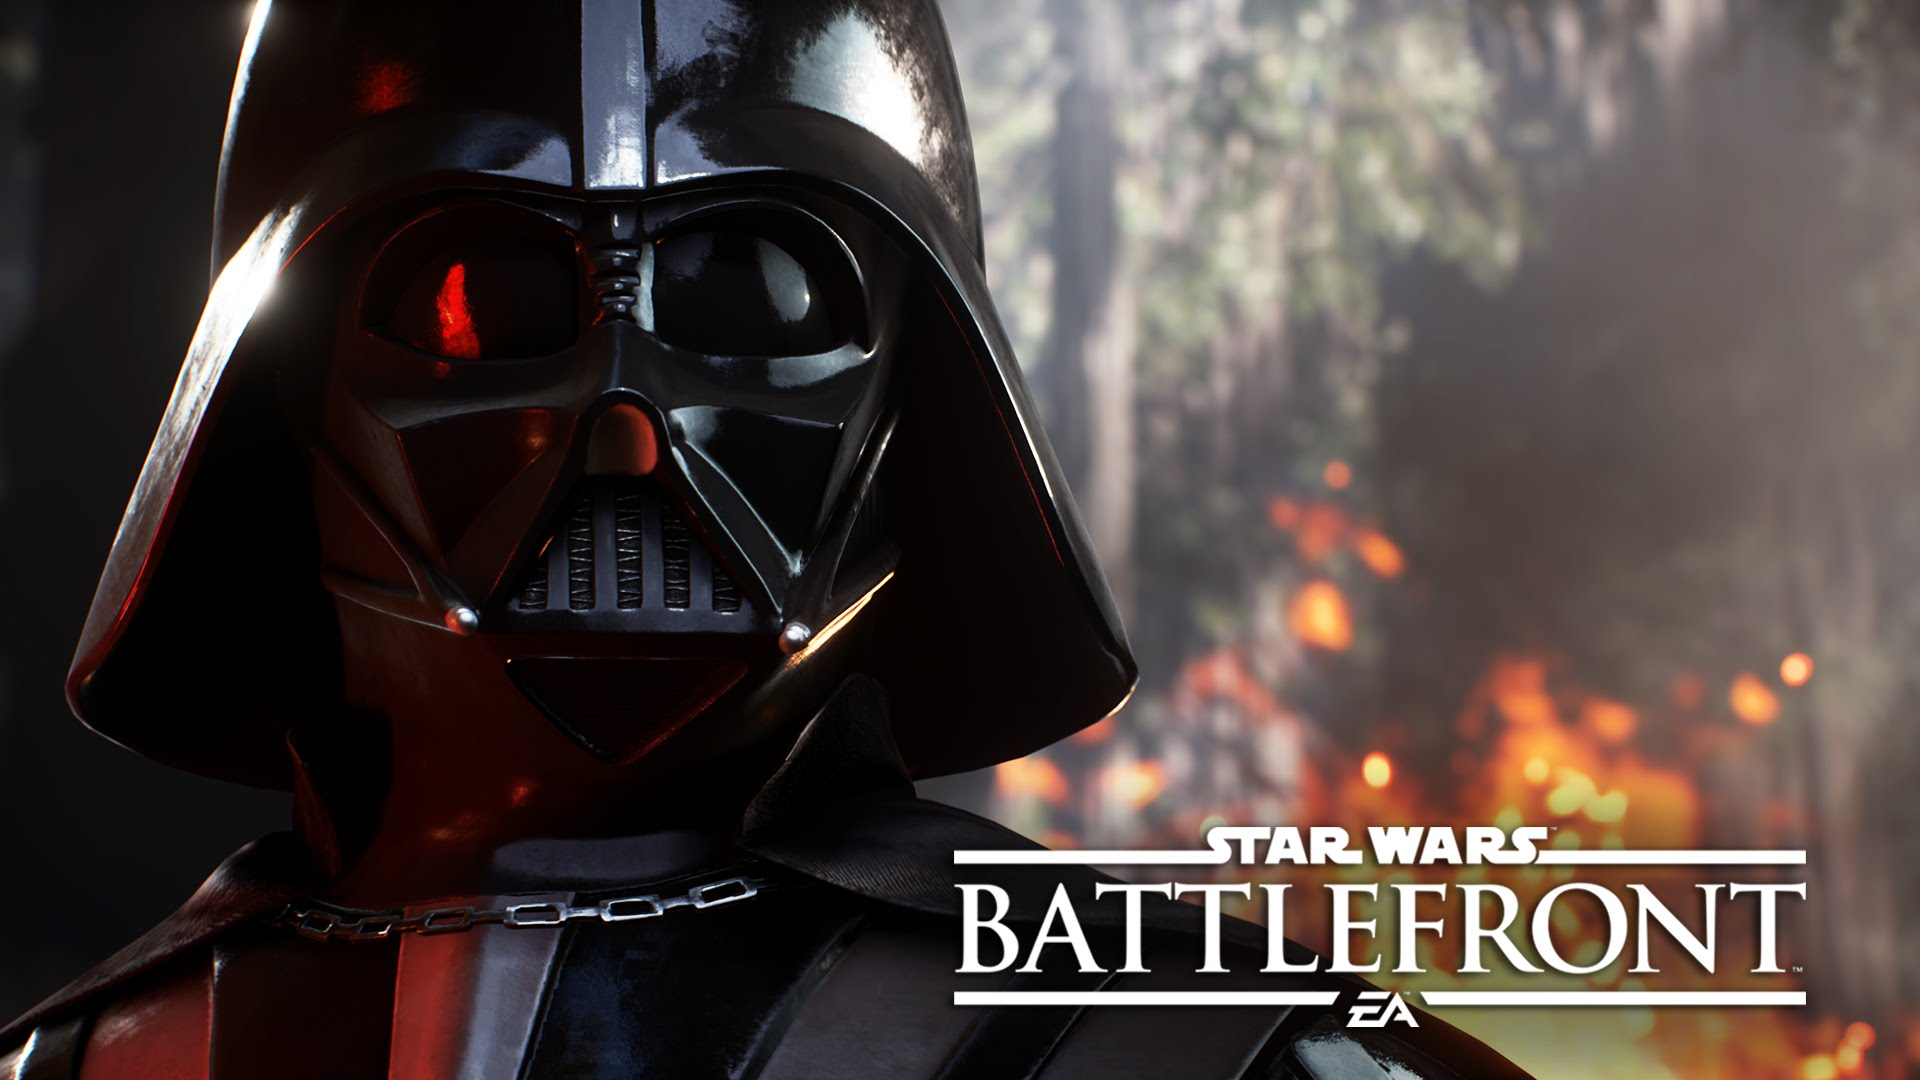 Star Wars Battlefront AMD Nvidia Benchmark